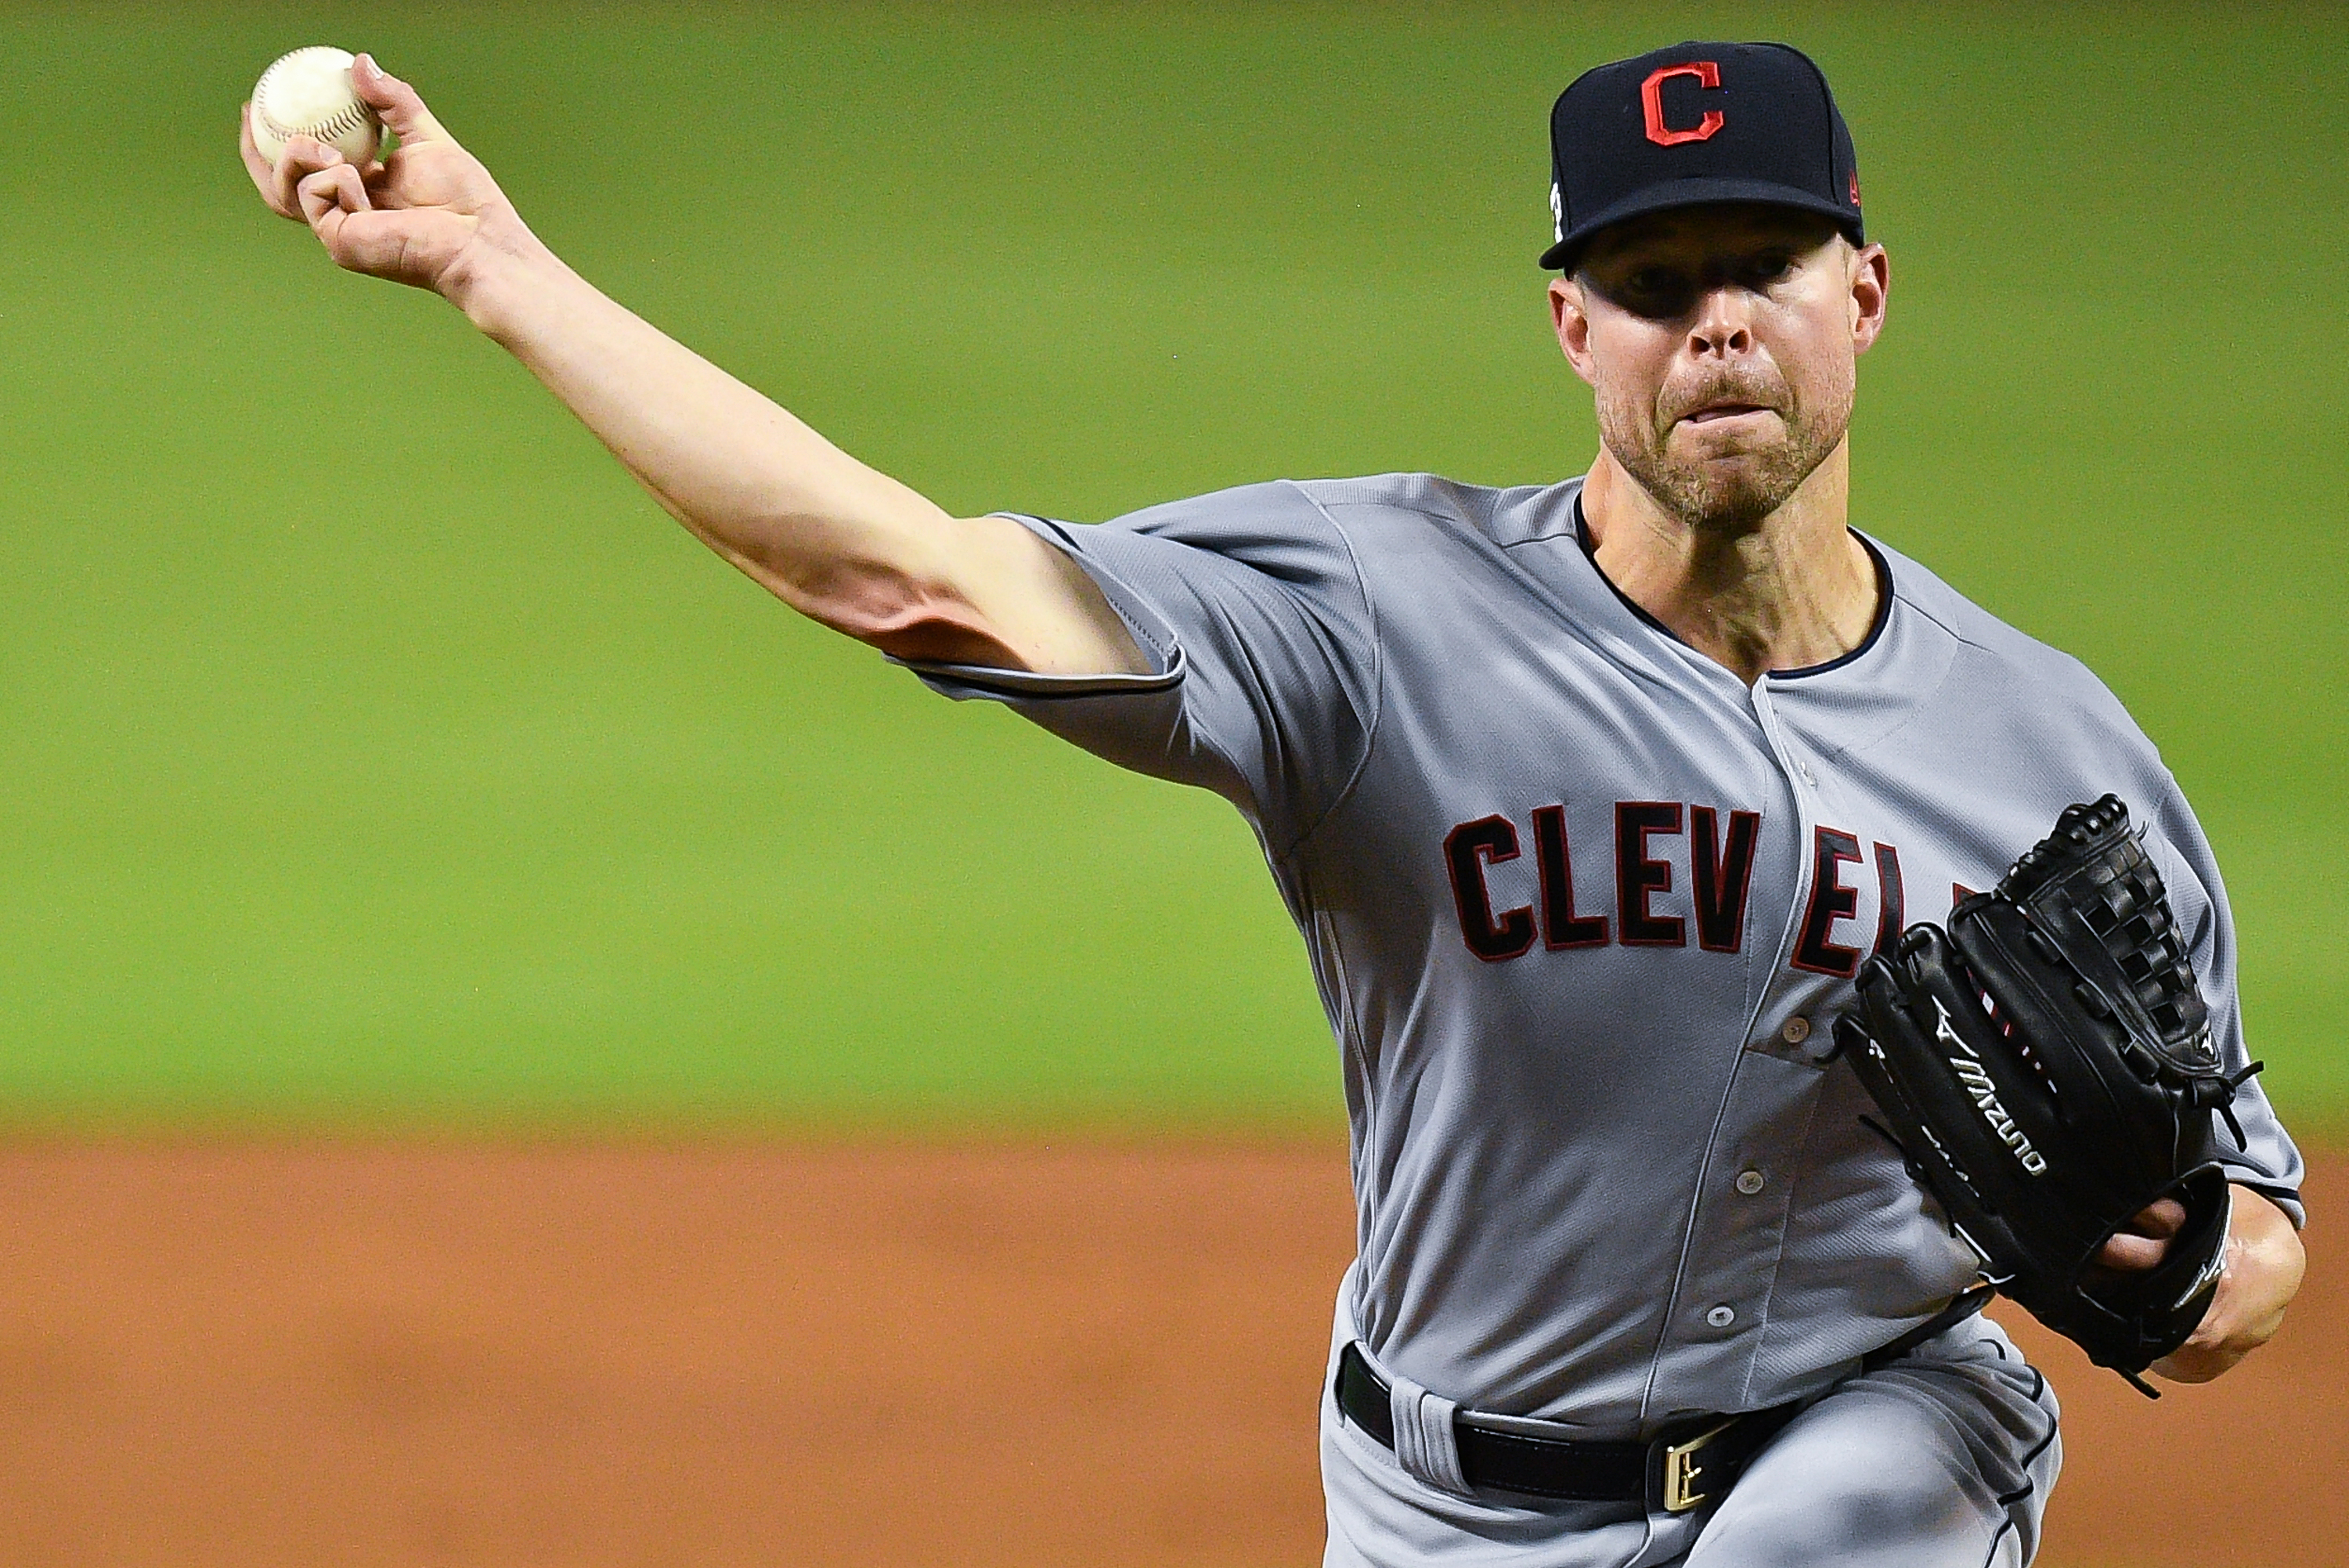 Corey kluber clipart image free download Corey Kluber Placed on IL with Fractured Ulna; Will Be ... image free download